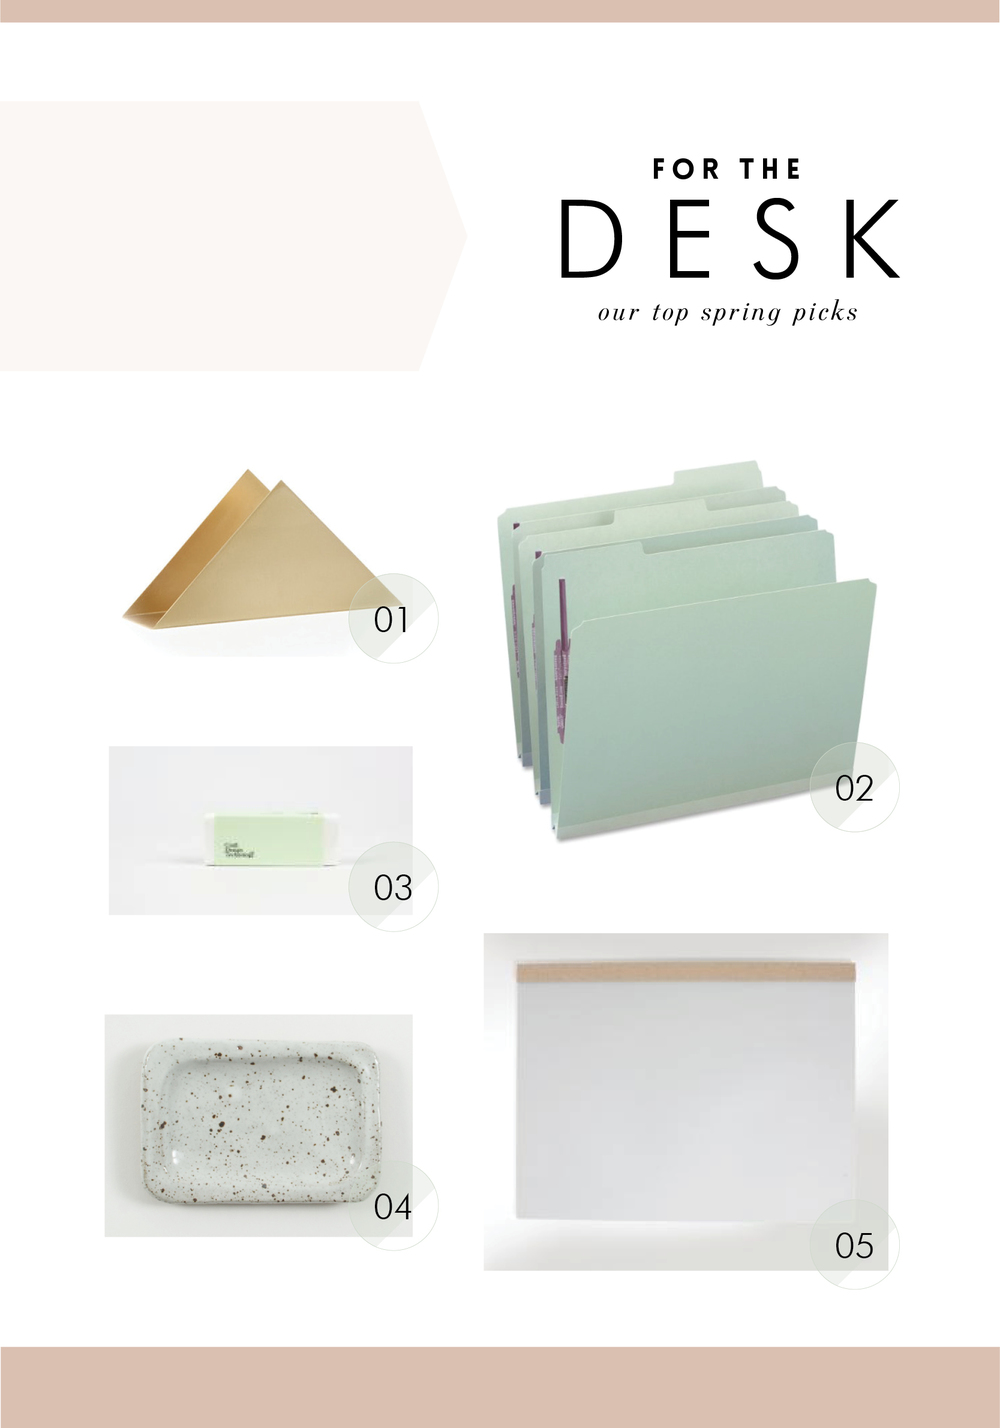 01 desk organizer  /  02 folders  /  03 eraser  /  04 paper clip holder  /  05 pad that doubles as a mousepad!